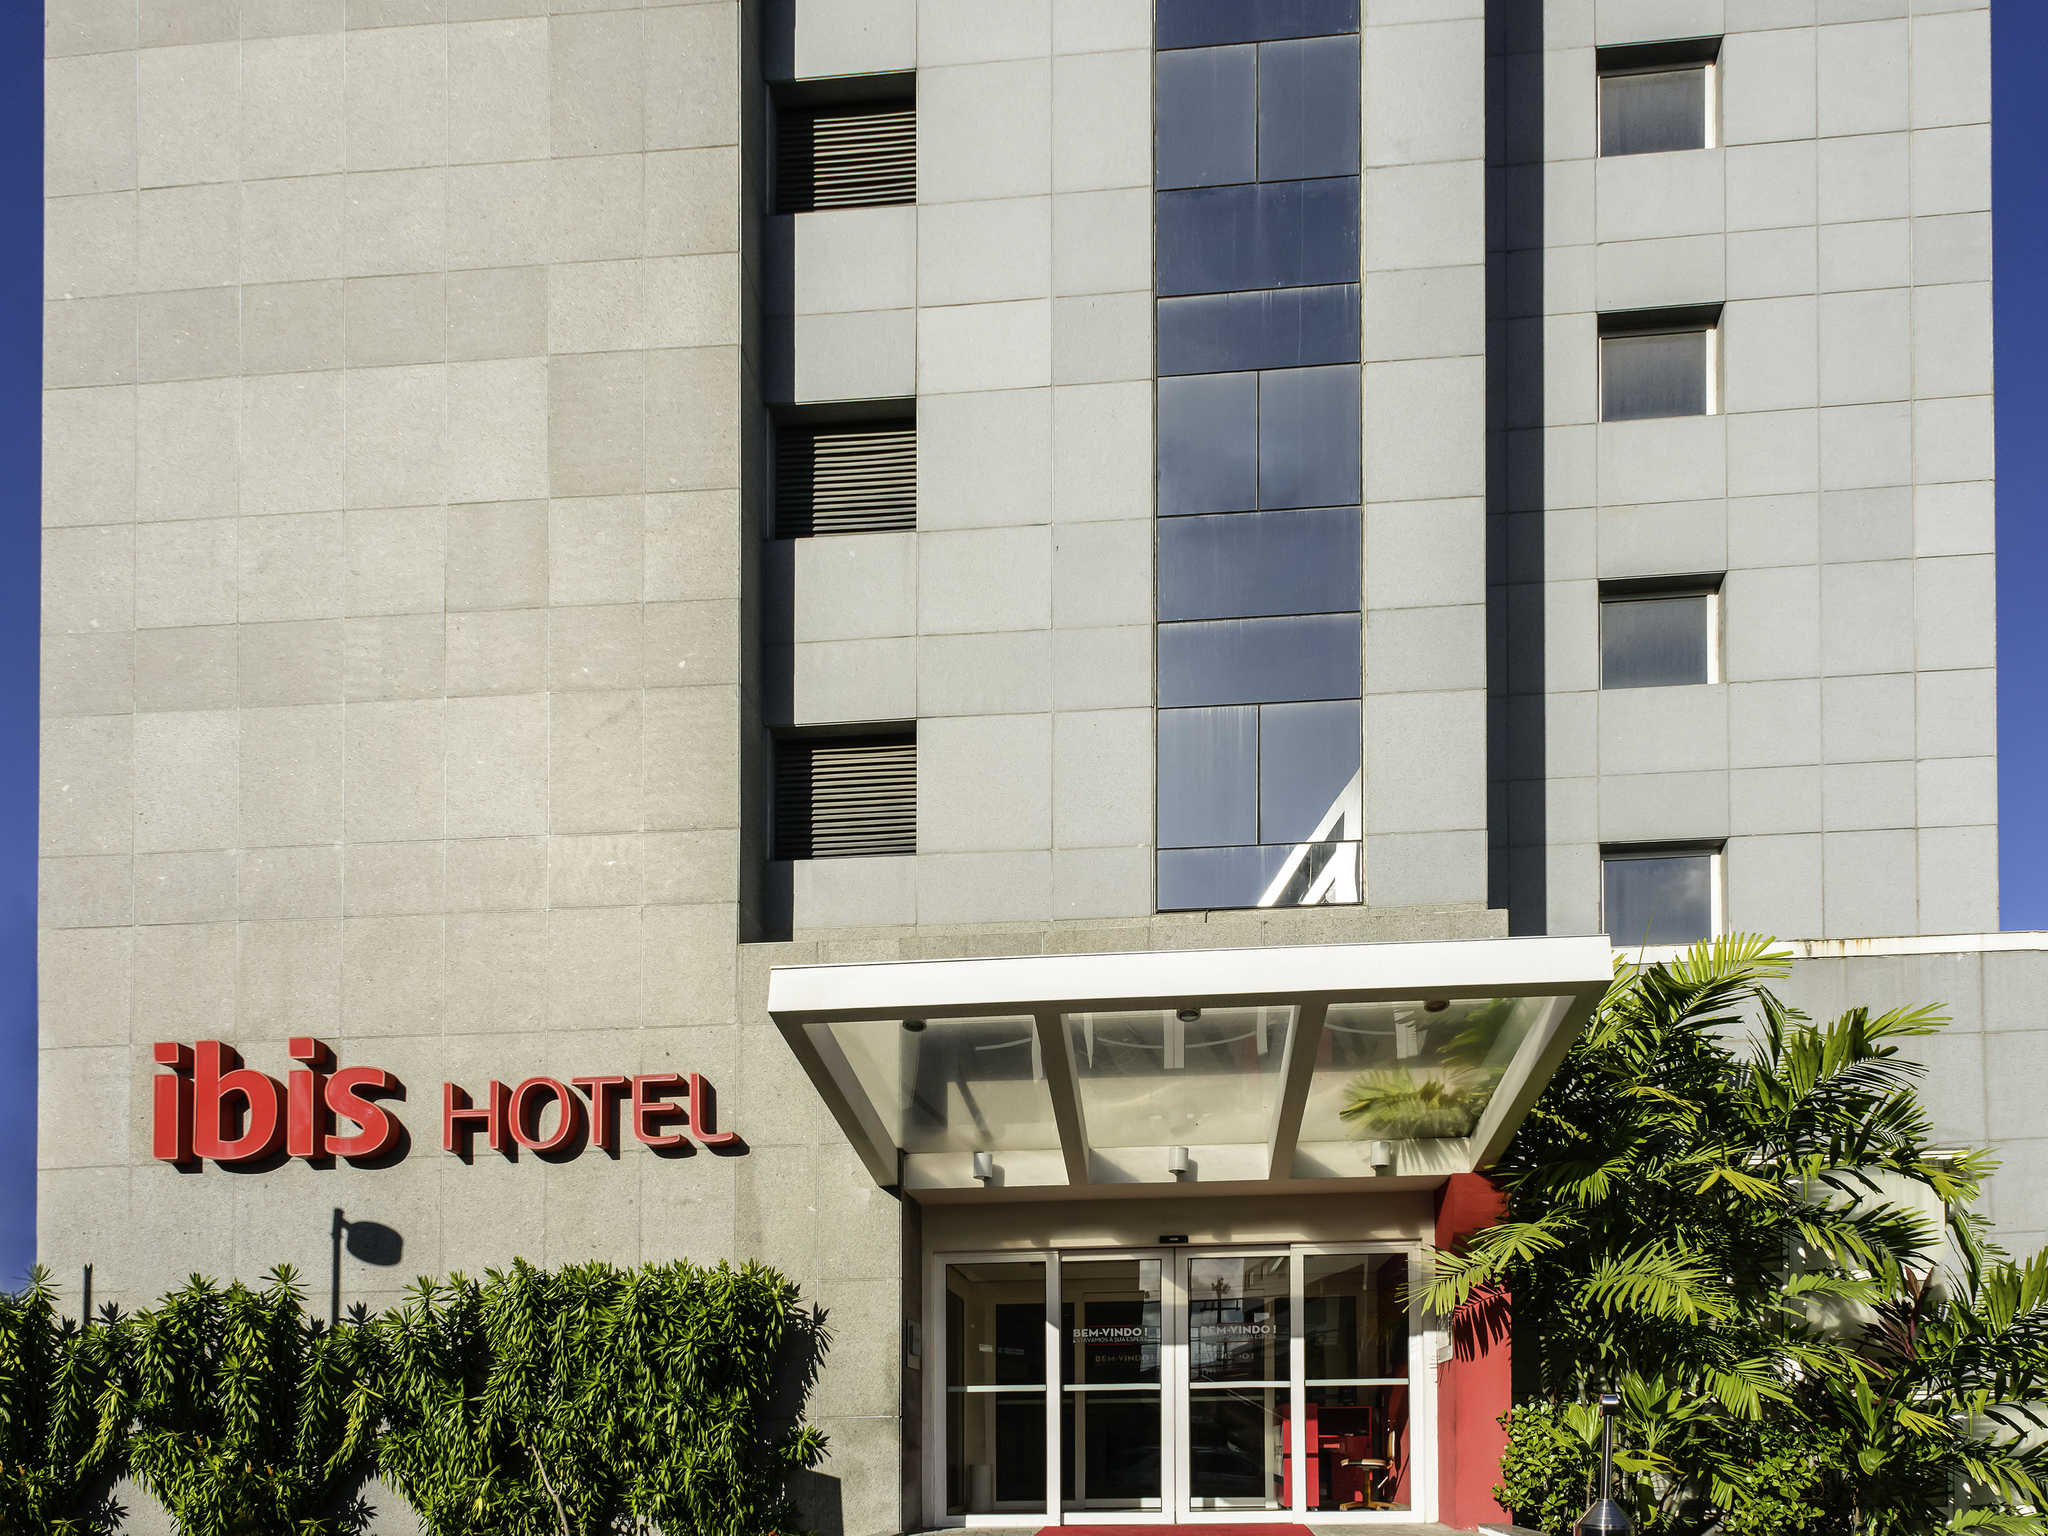 ibis recife book your bud hotel on the official web site